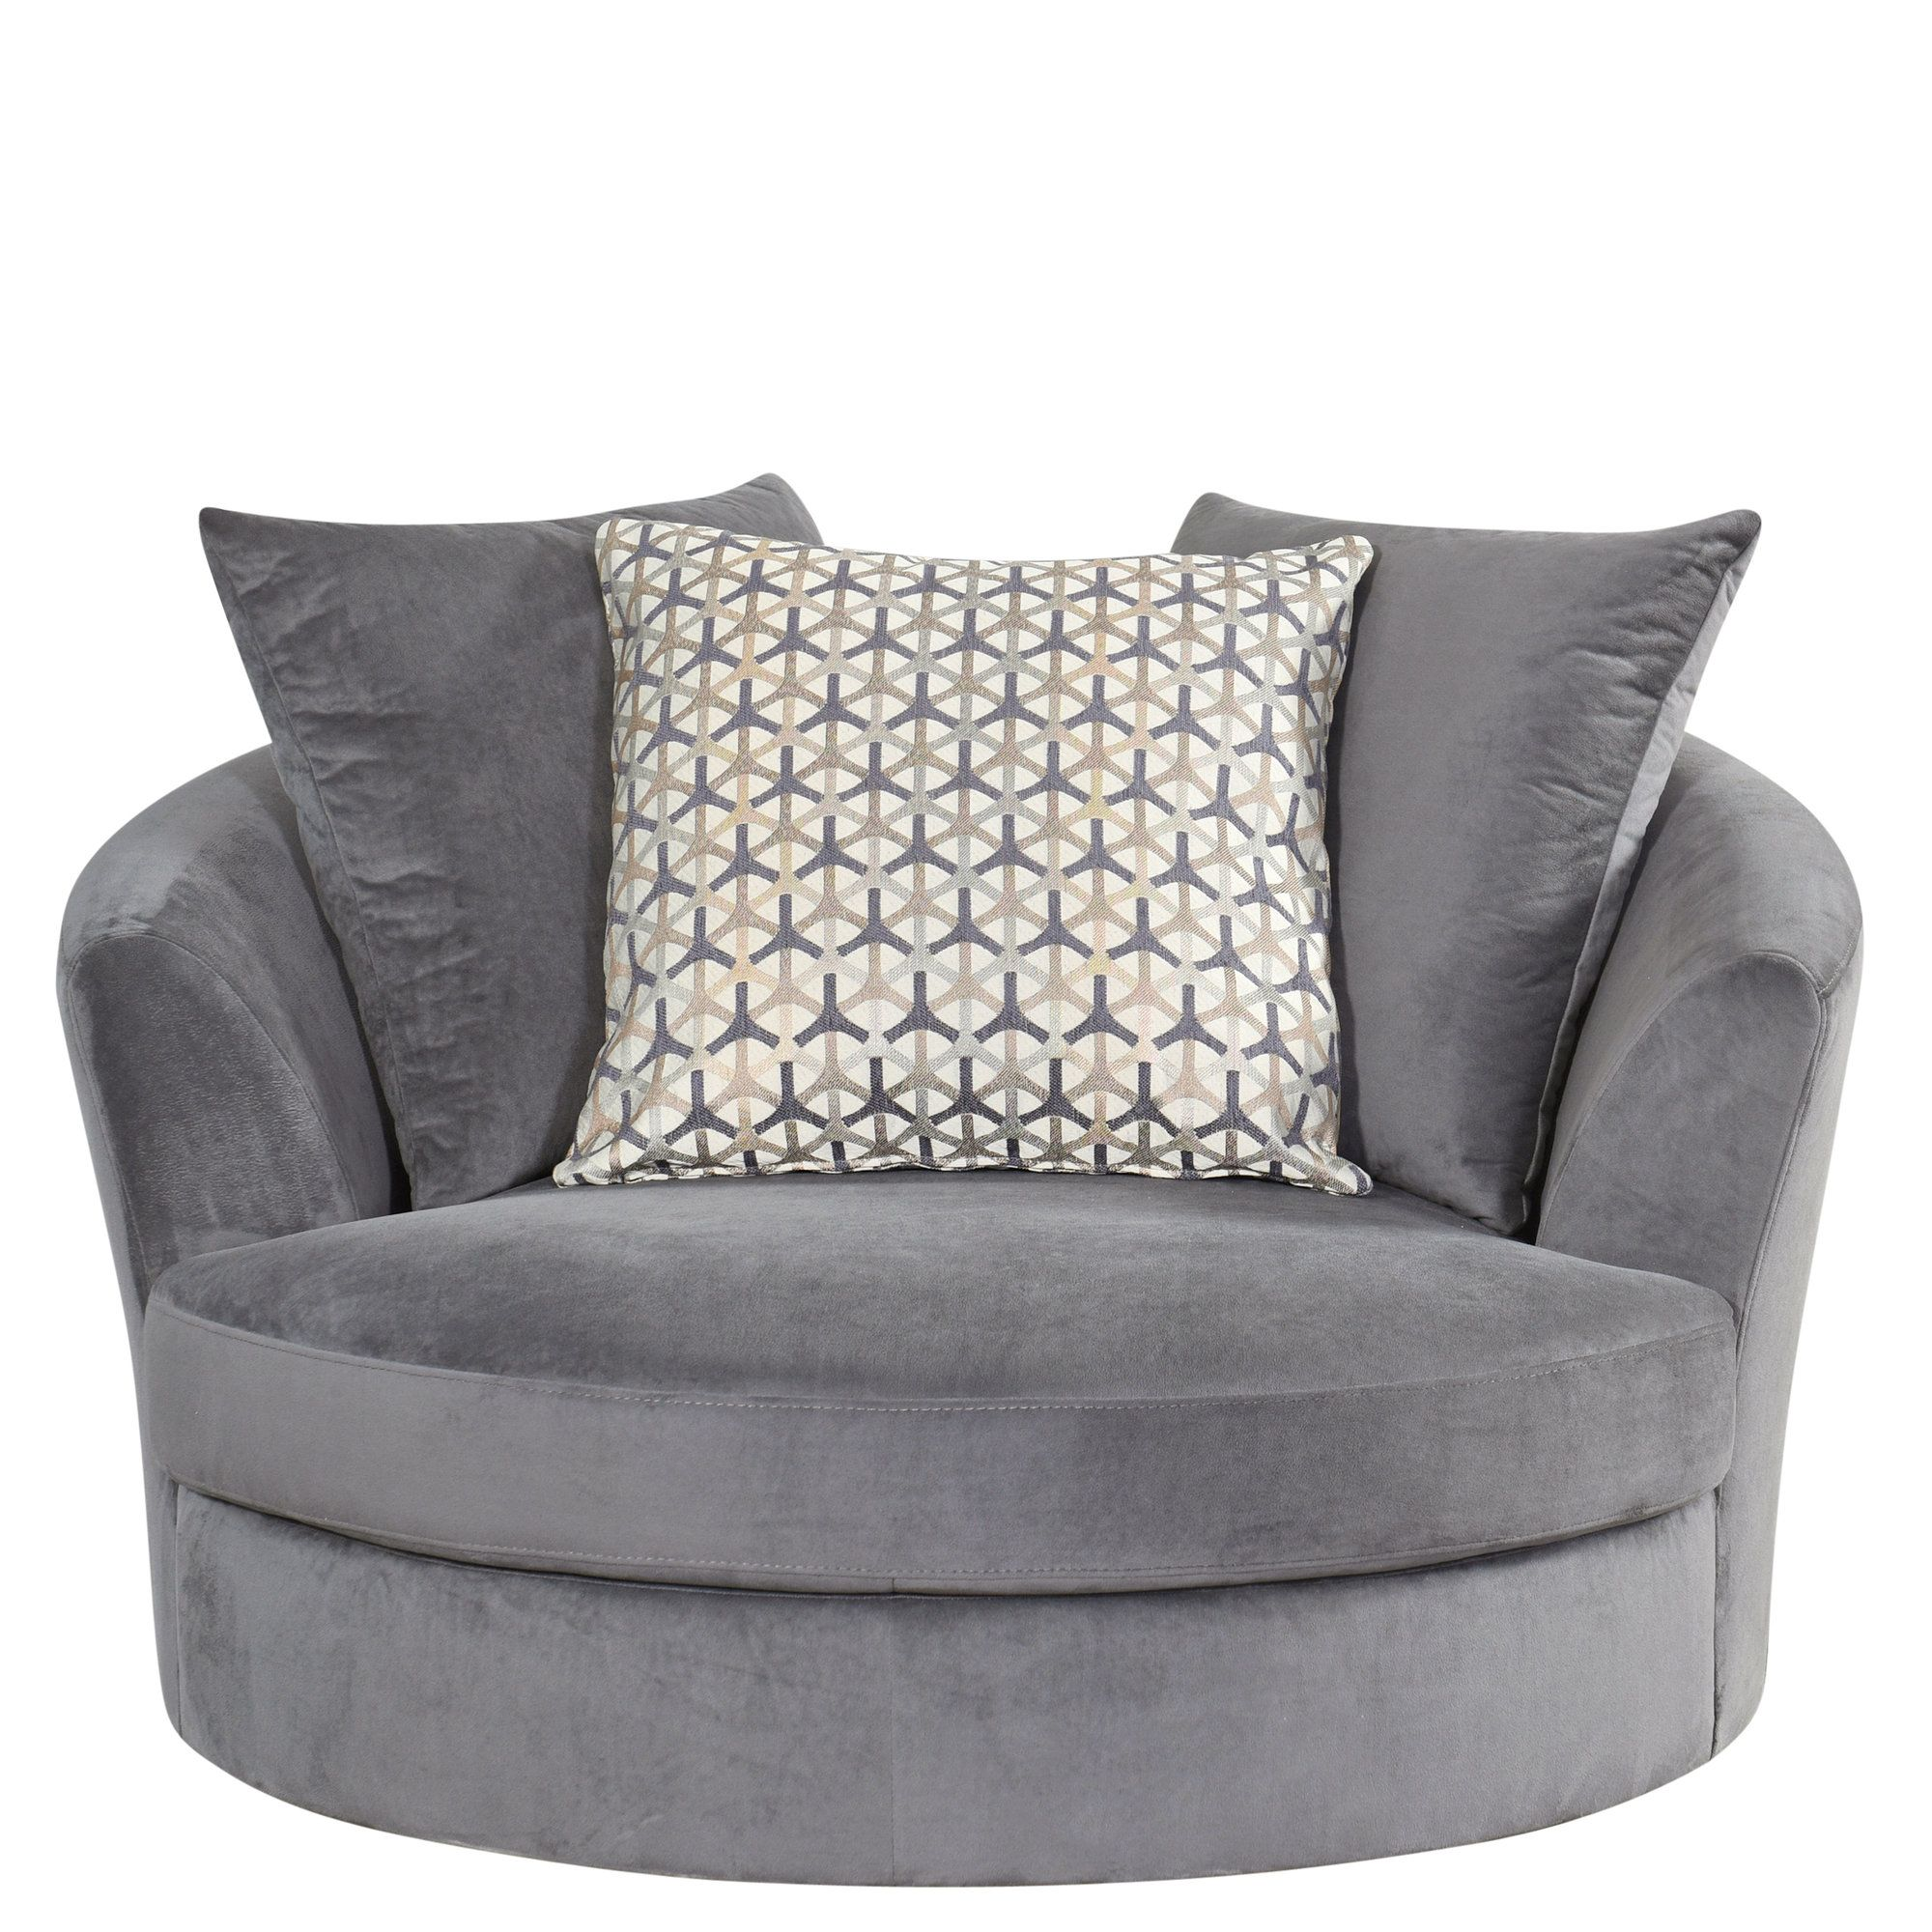 Atkin Swivel Barrel Chair for the theater